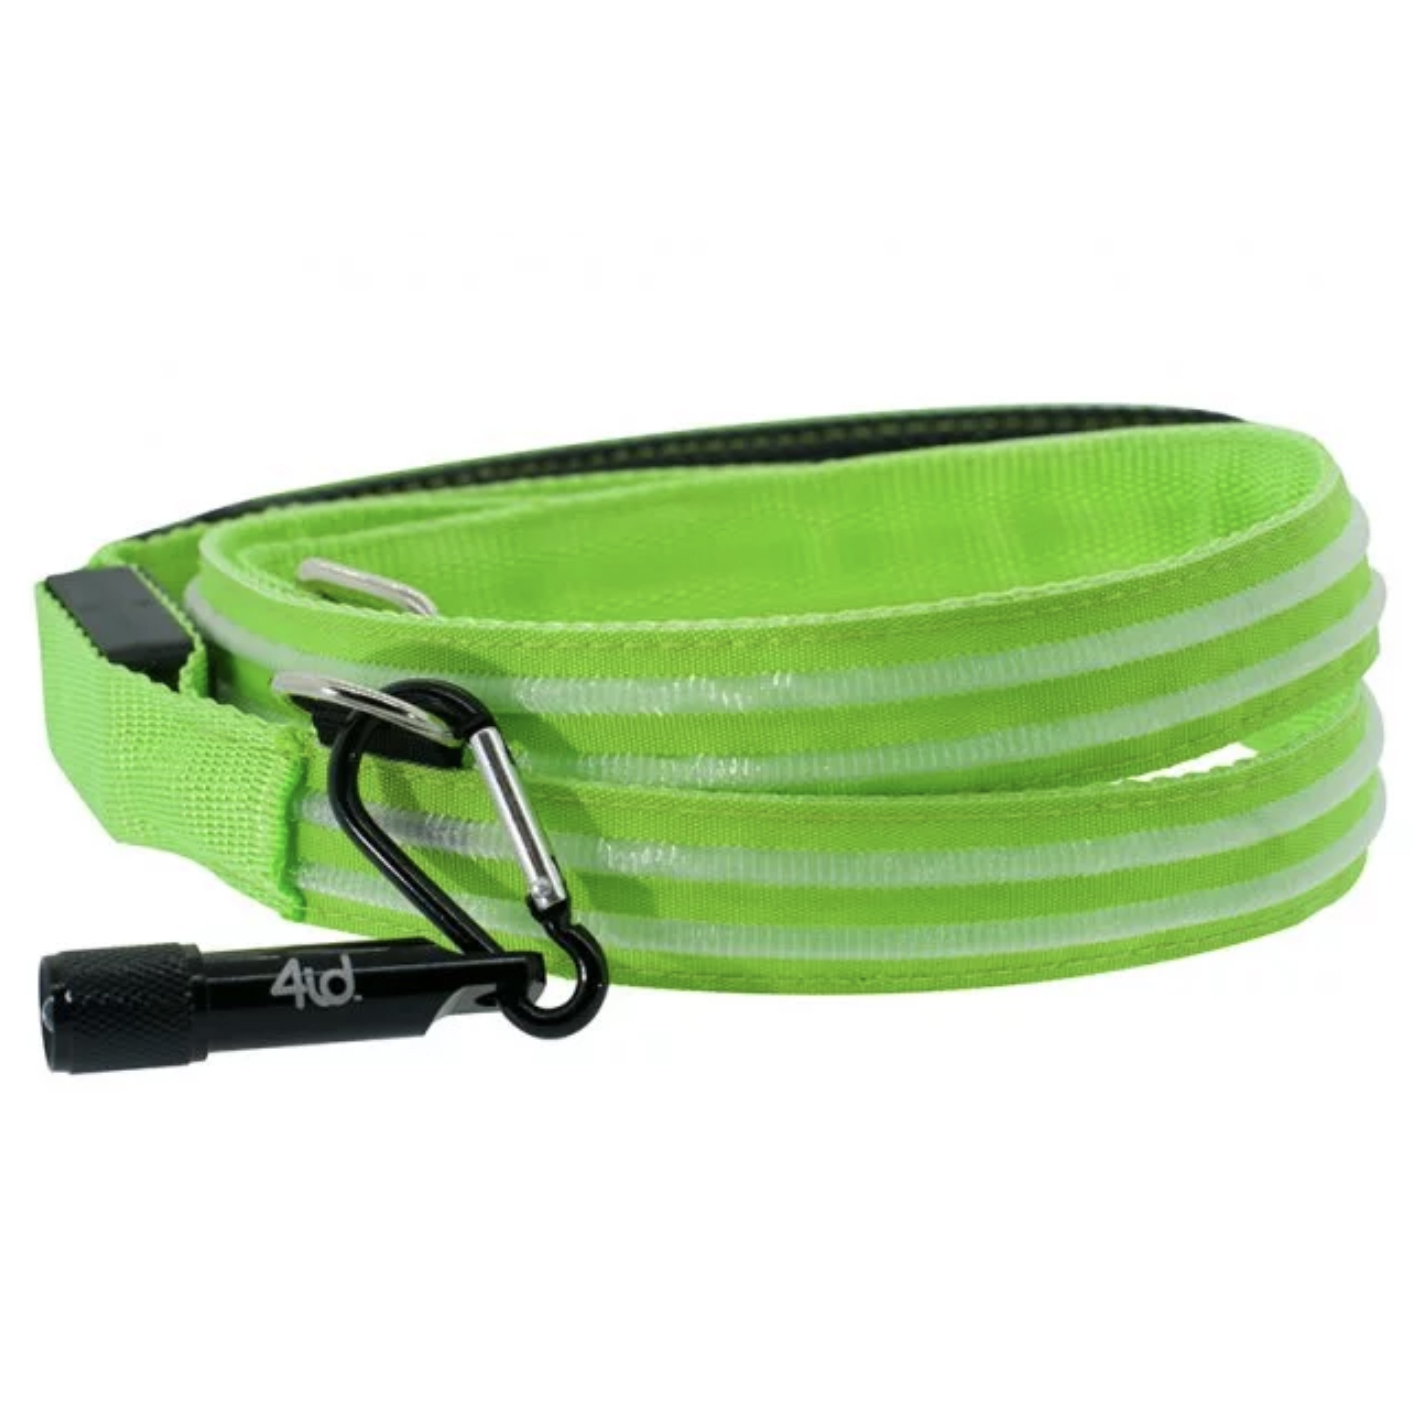 Best Christmas gifts 2019 - 4id The LED Lite Up Leash